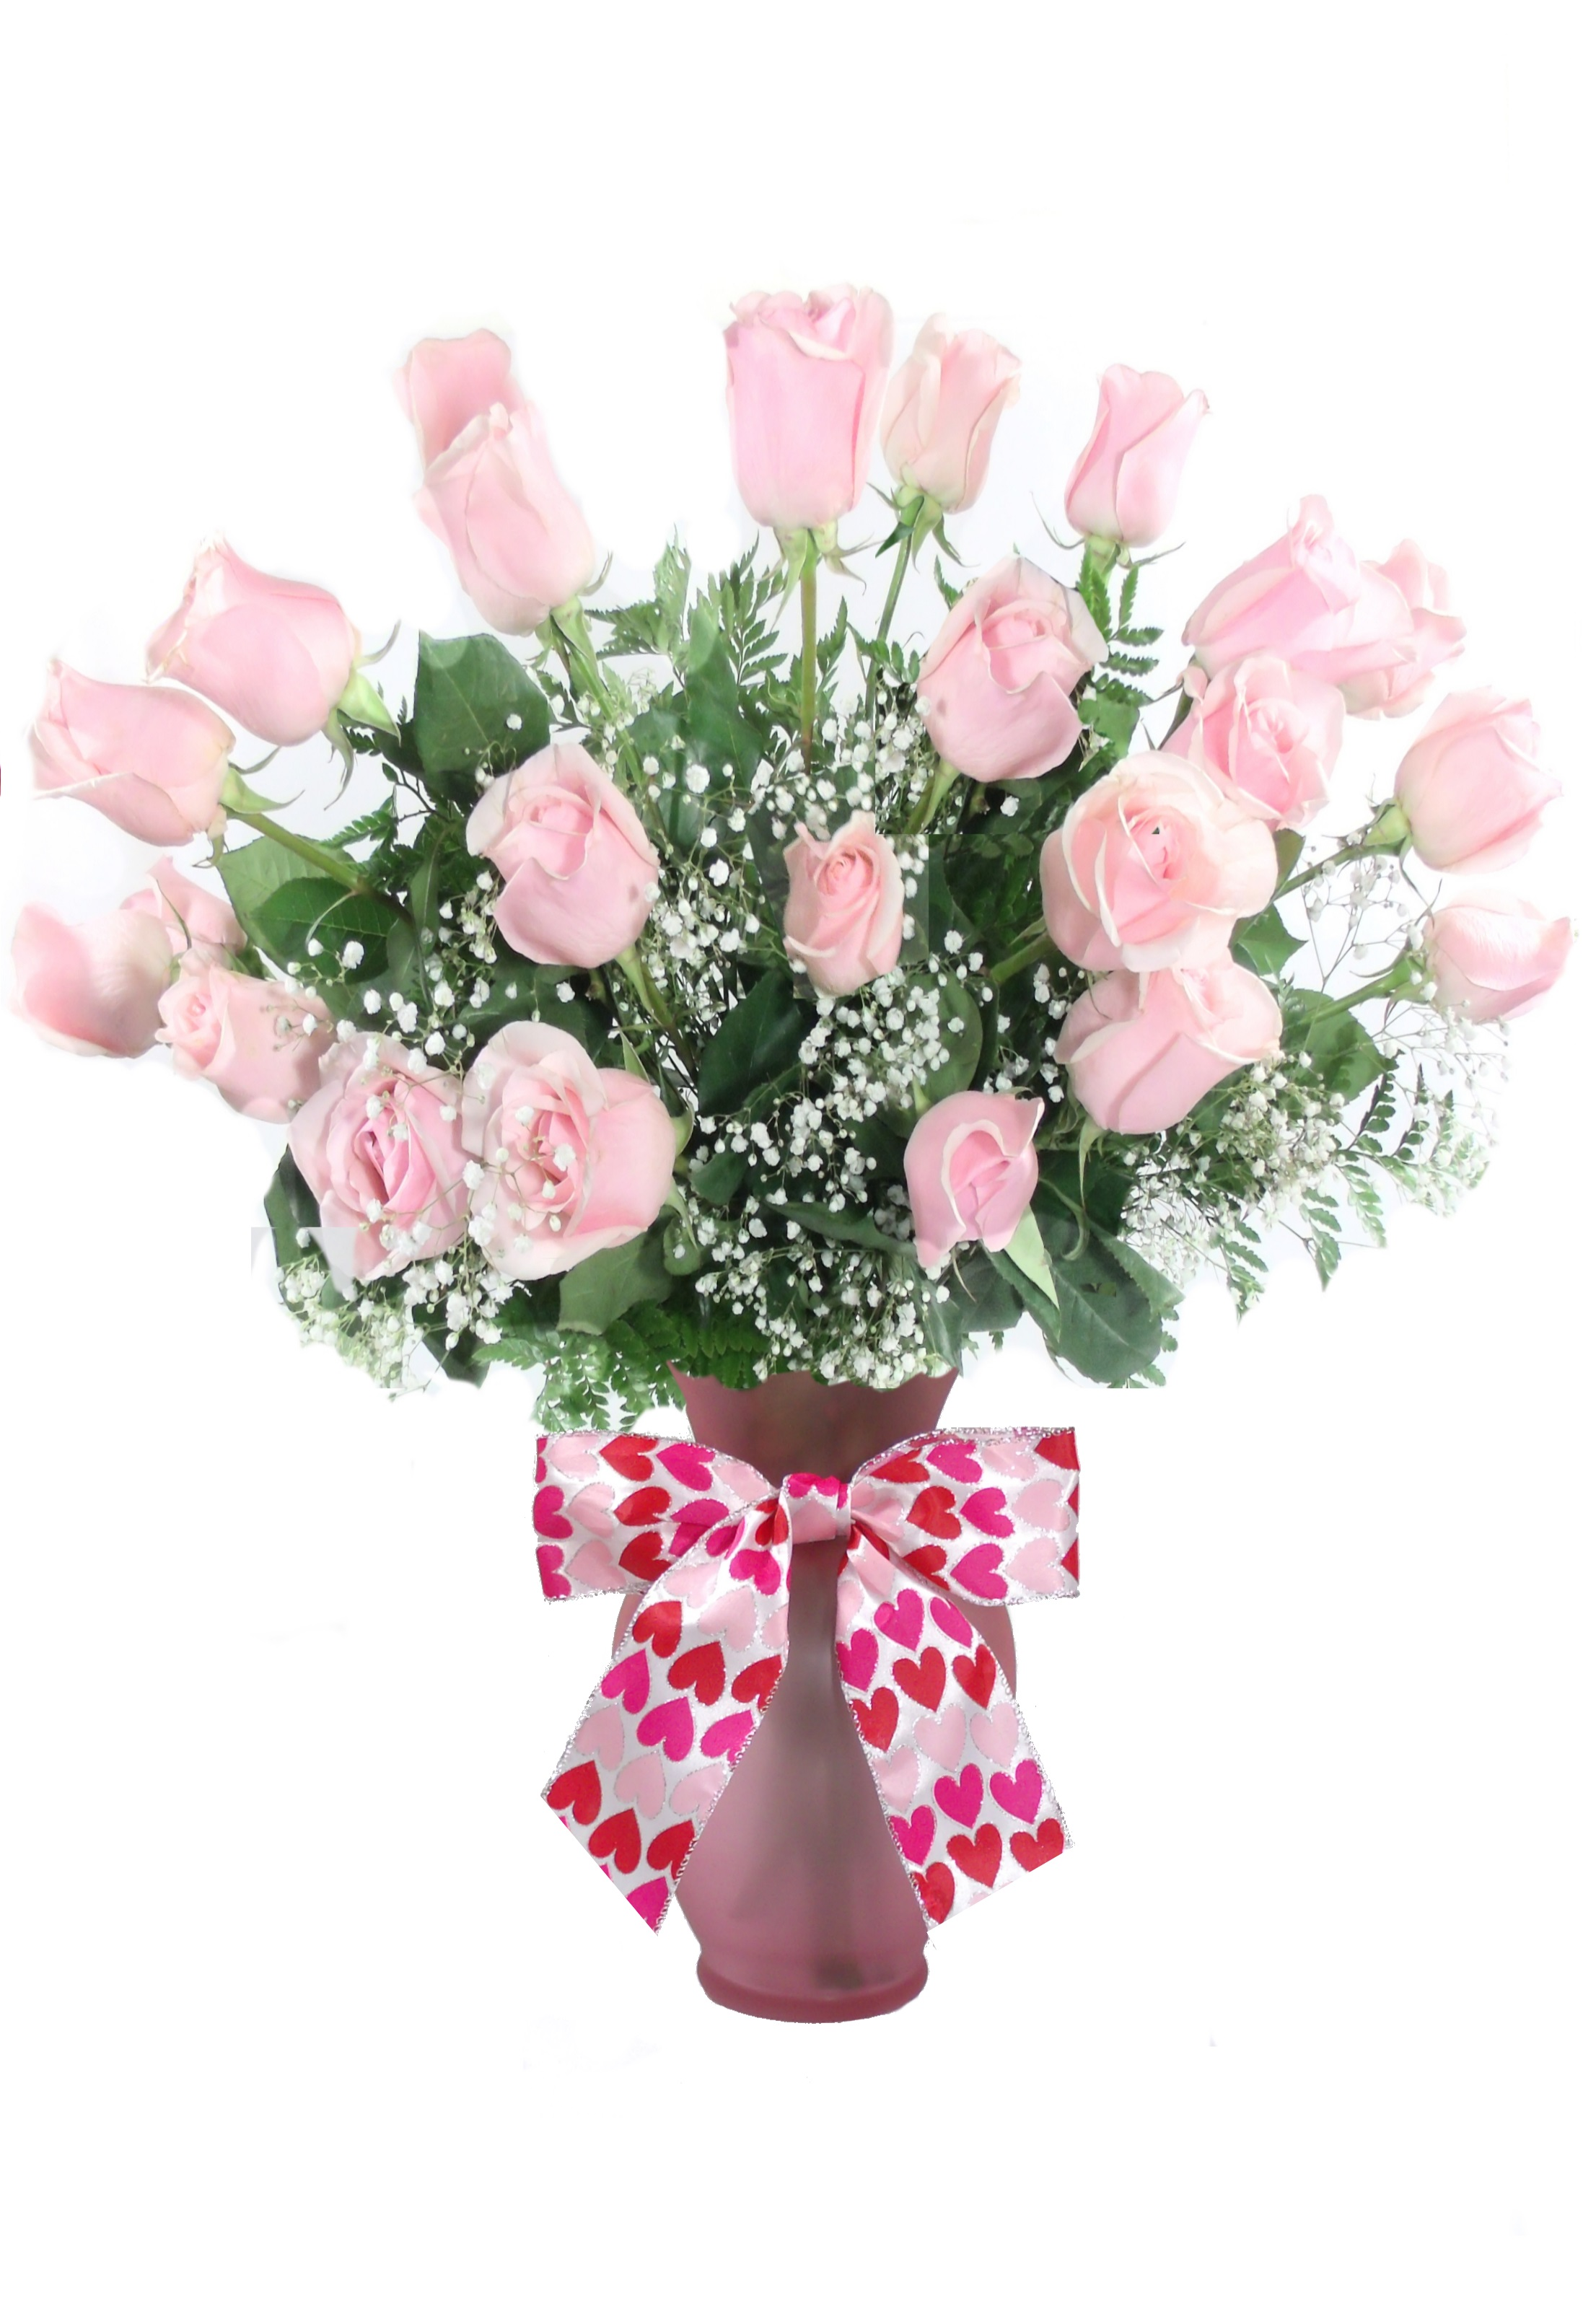 Valentine large arrangements product categories array of gifts true love light pink roses houston pearland florist valentine day flowers delivery izmirmasajfo Gallery